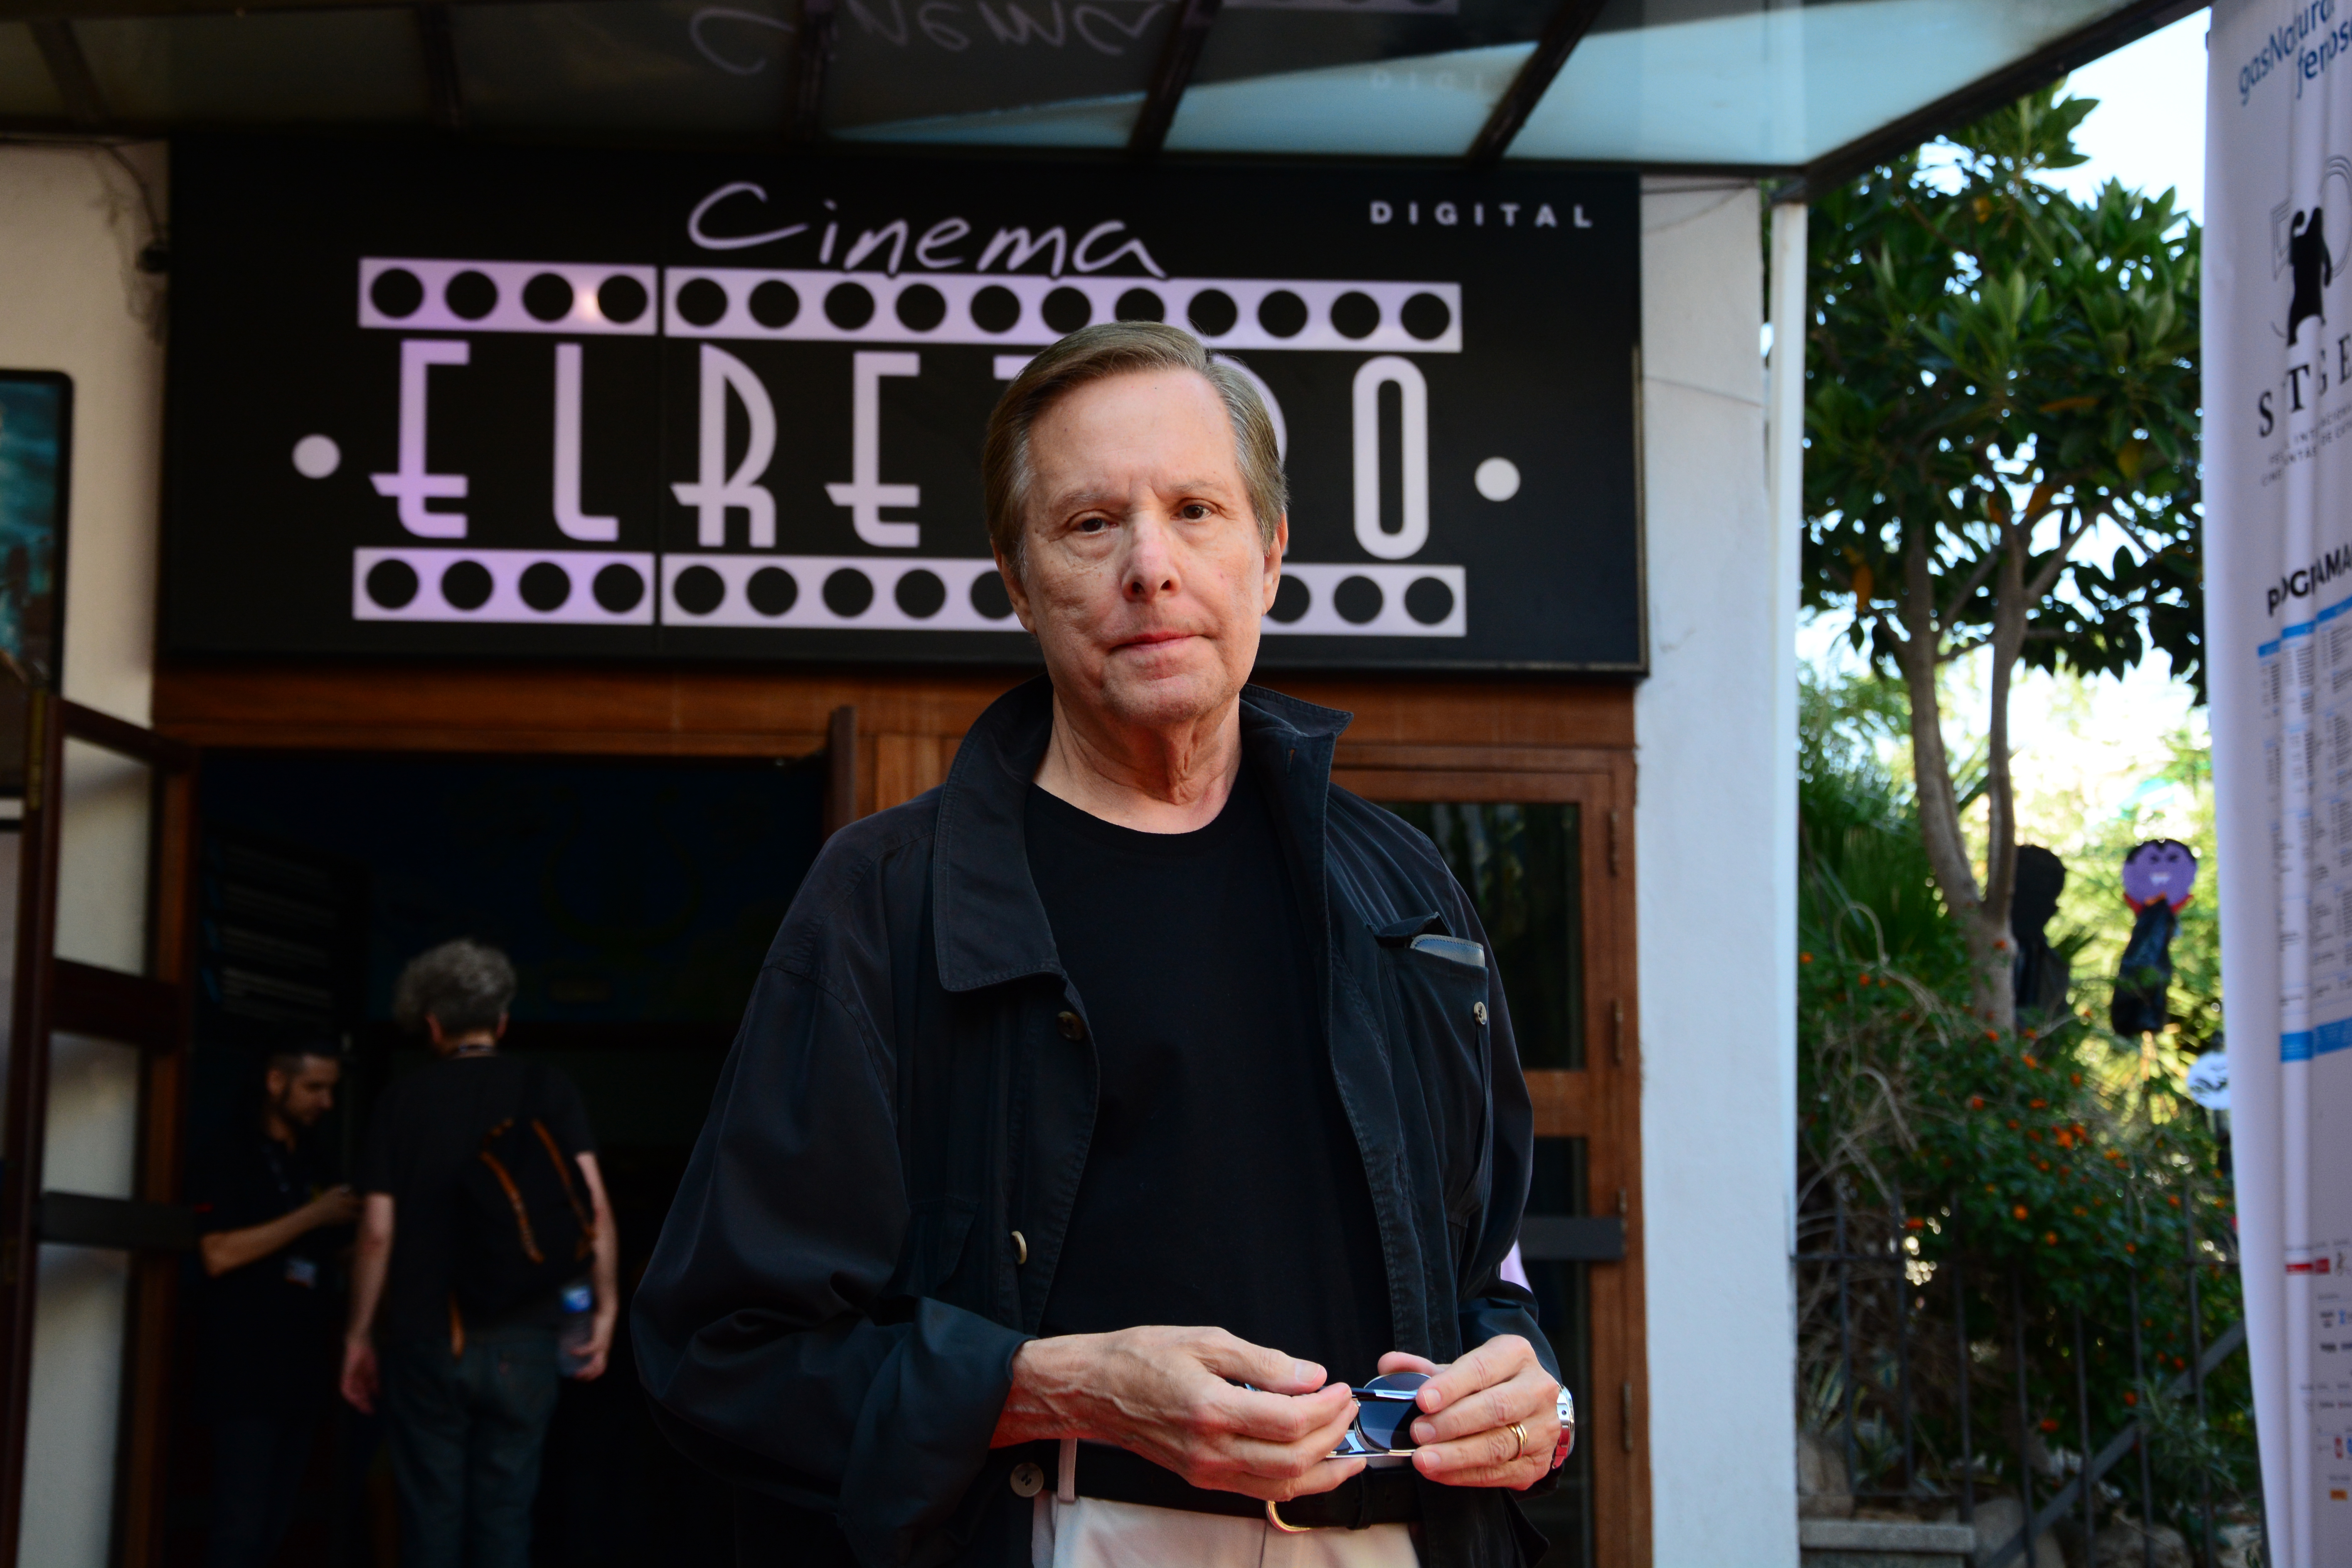 William Friedkin enlluerna a Sitges